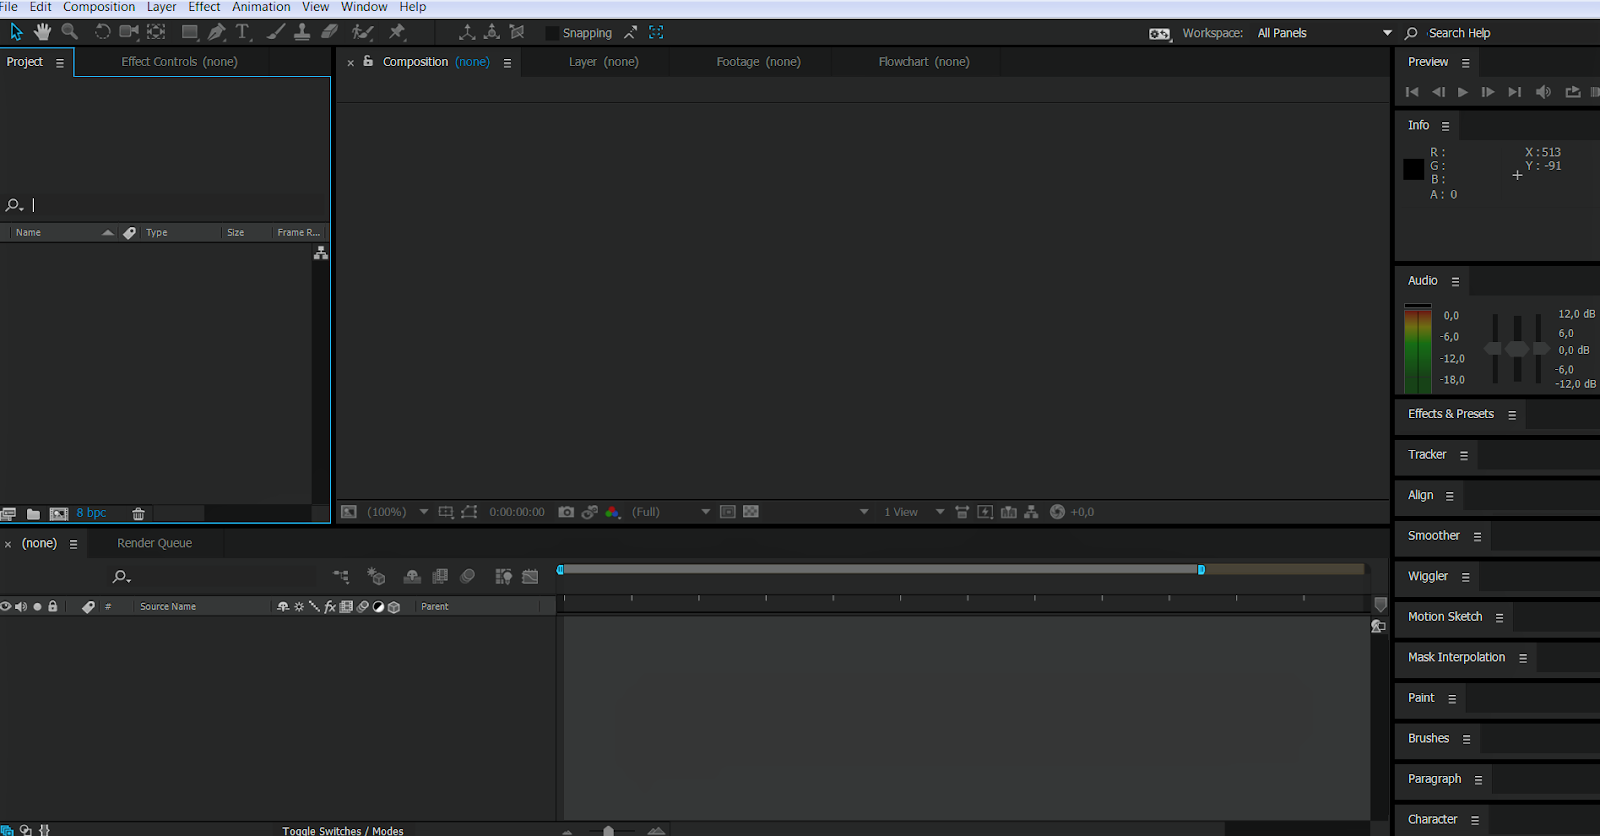 Adobe After Effects CS6 Full Version